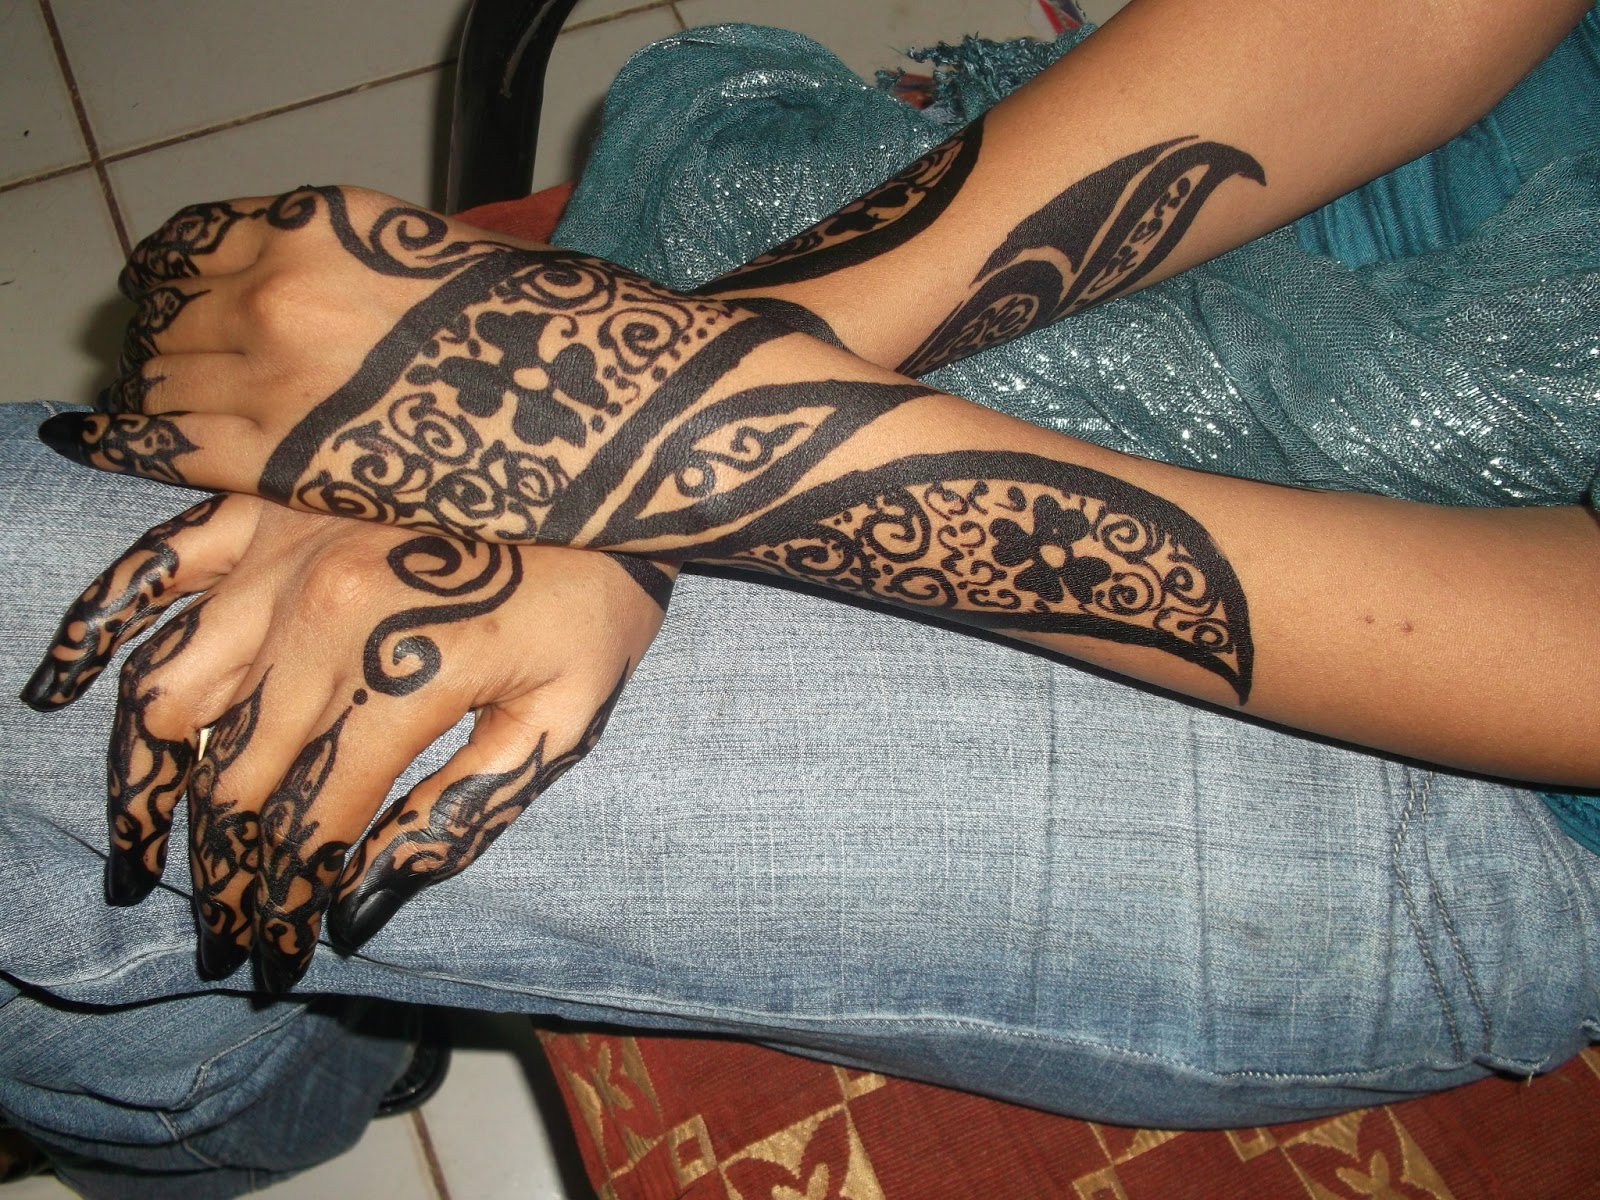 Sudanese wedding rituals and traditions - The Sudanese Equivalent Of The Hen S Party Is The El Hinna Or Henna Party